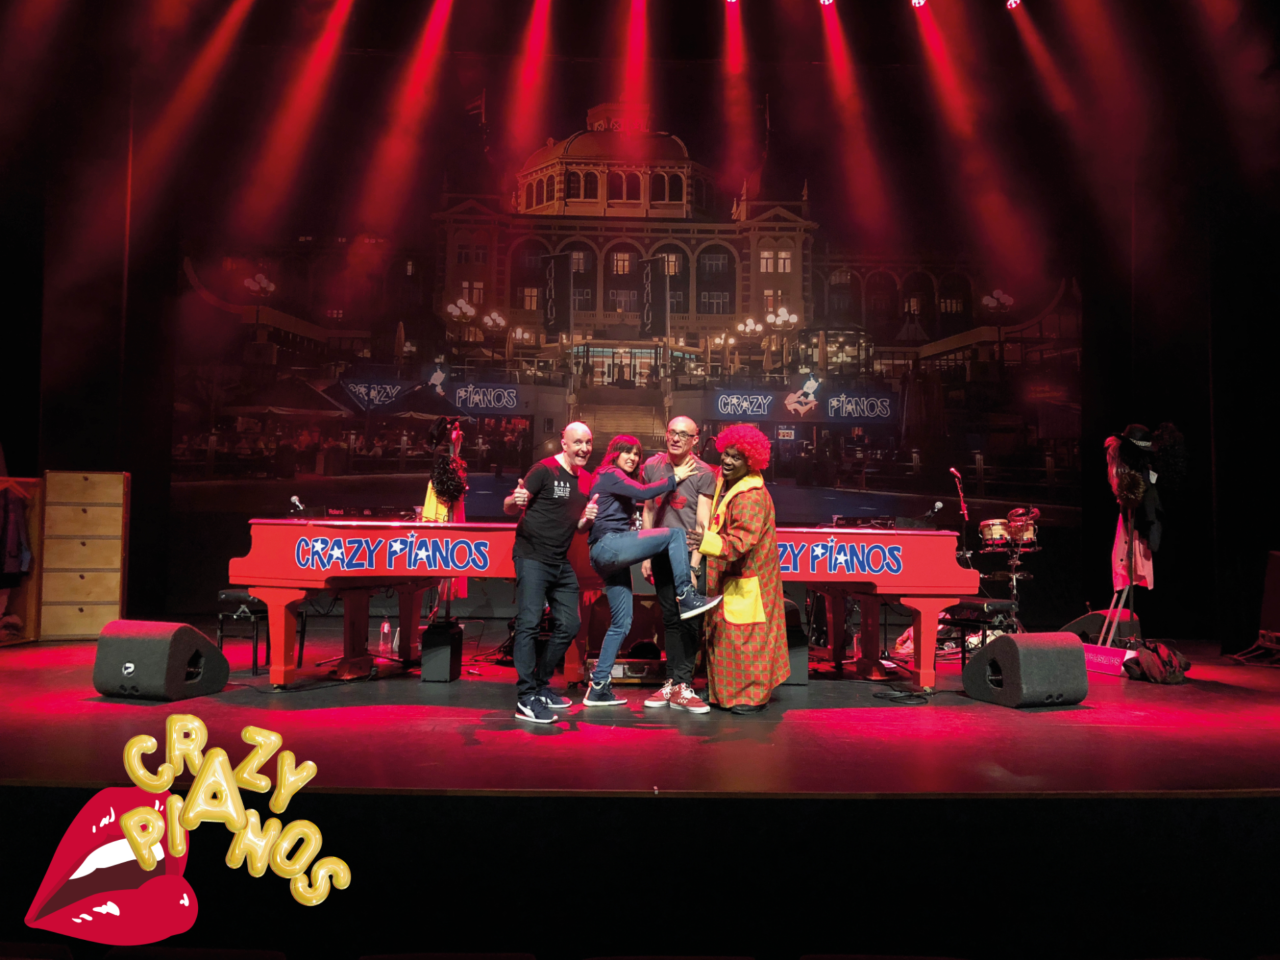 Crazy Pianos gaat het land in